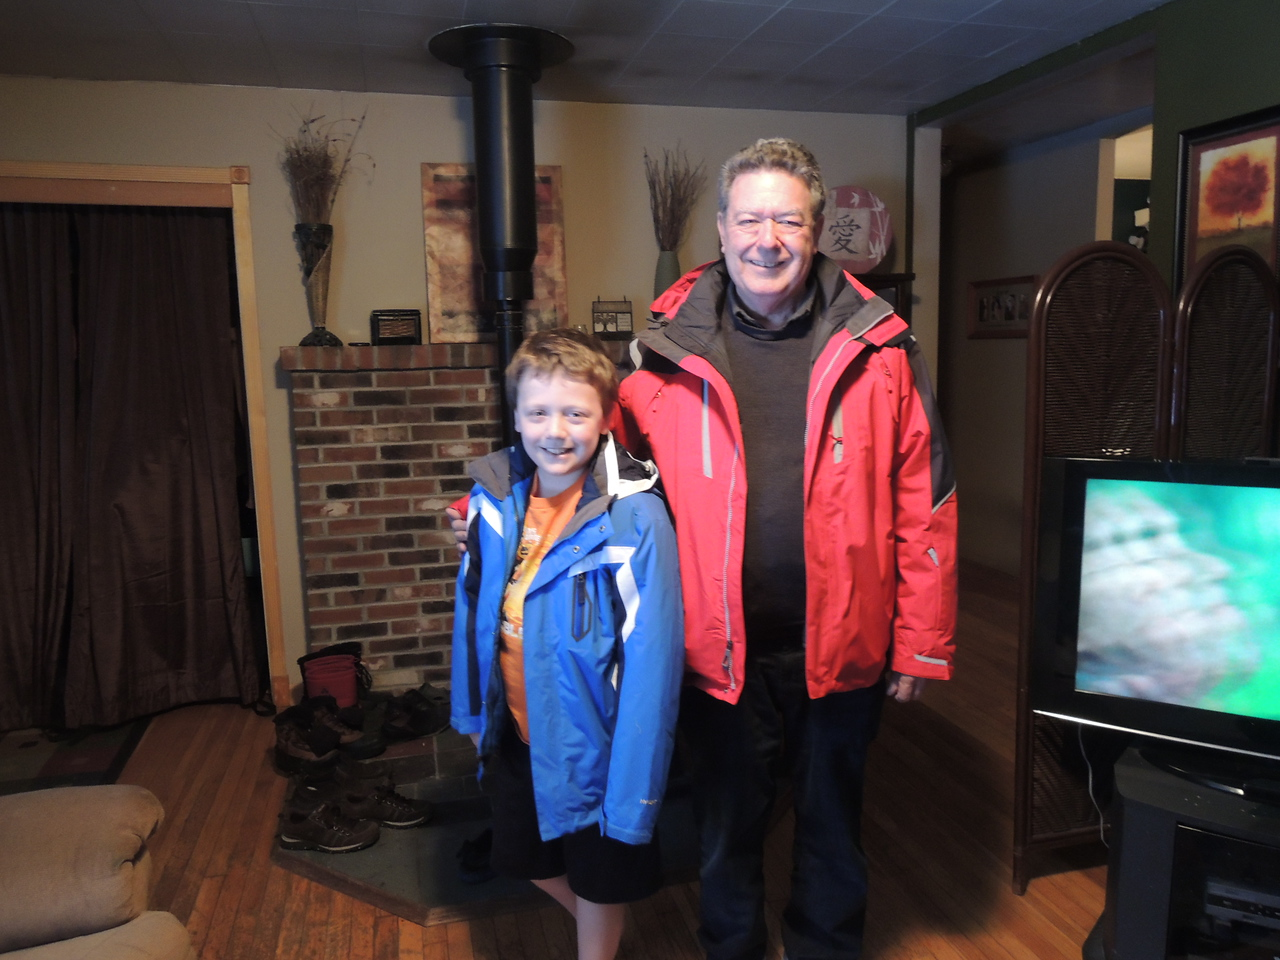 Connor and grandpa in their new jackets.